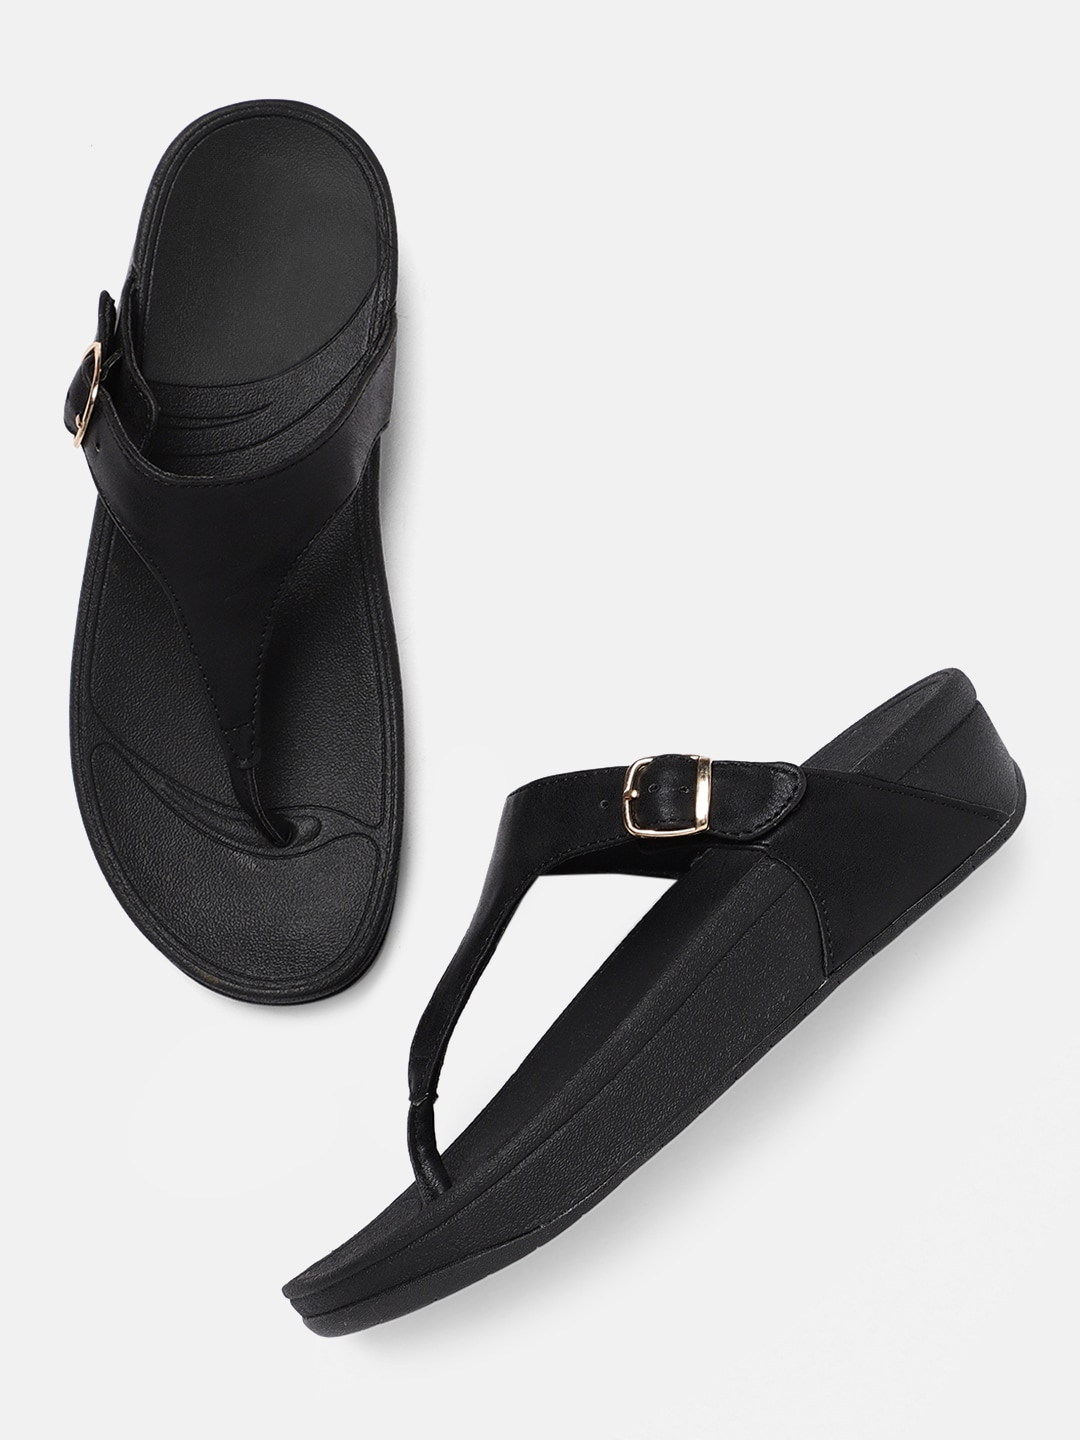 325c1ea8c657 Buckle Shoes - Buy Buckle Shoes Online at Best Price